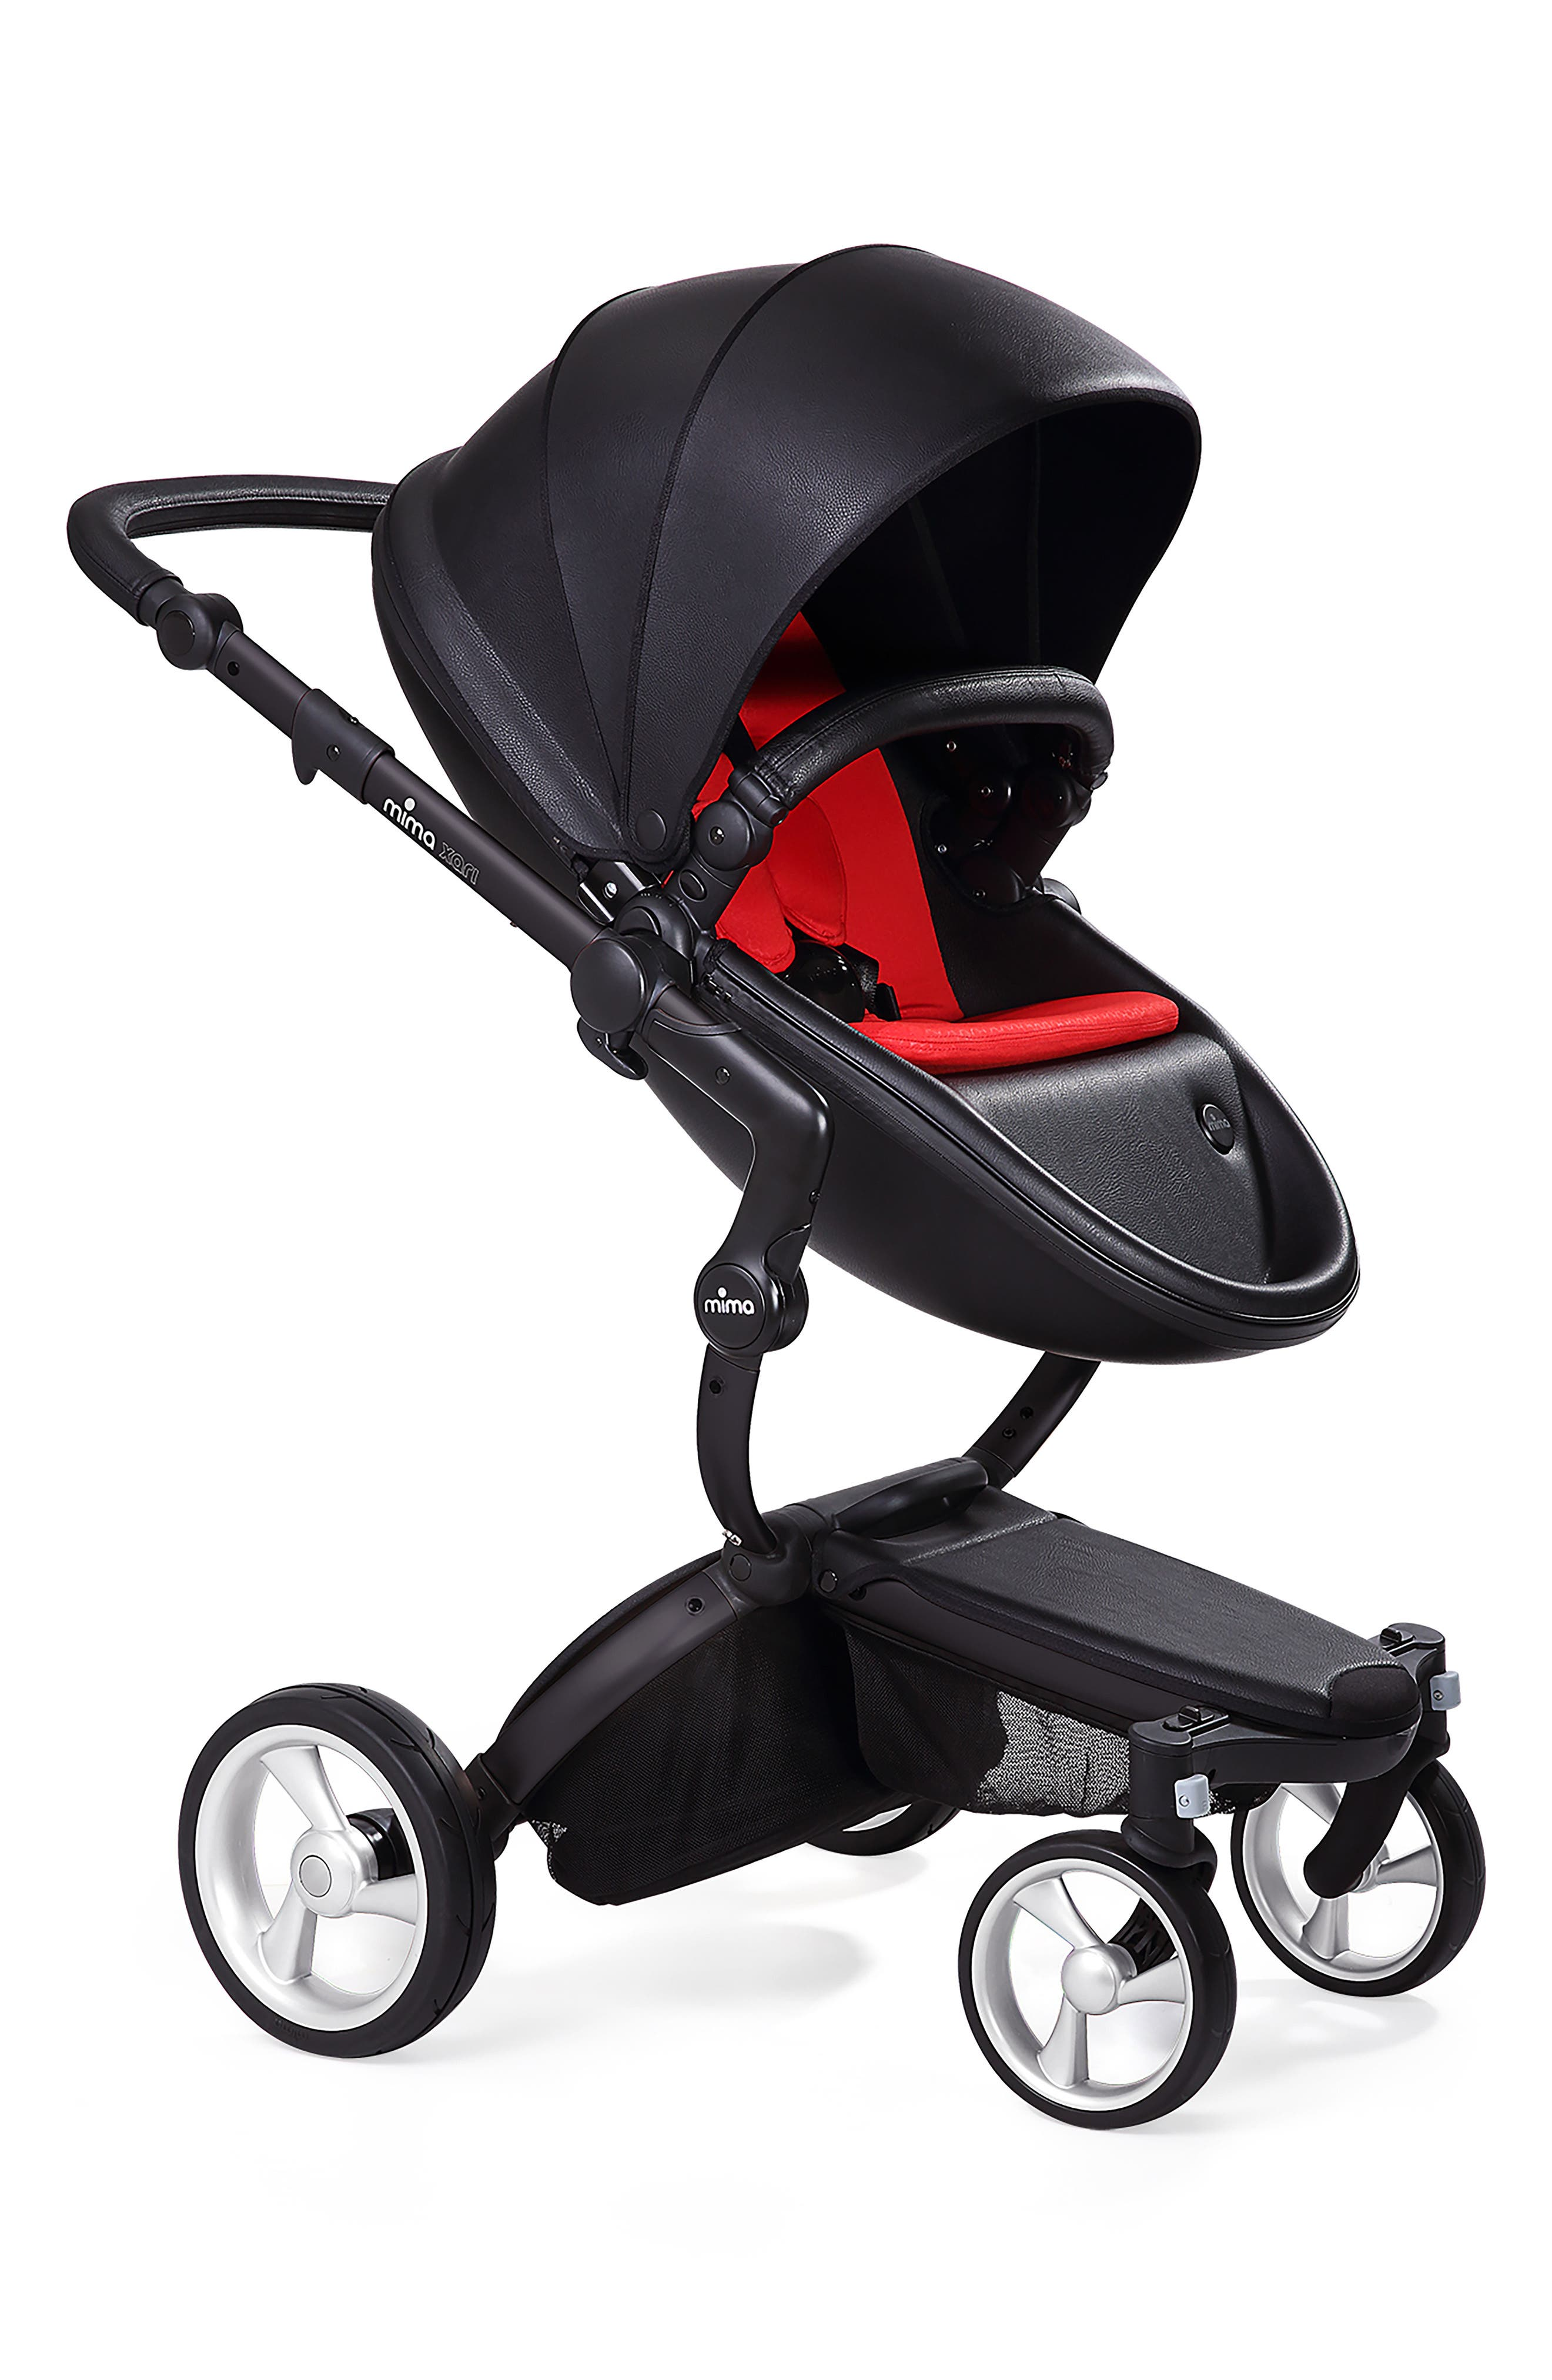 Main Image - Mima Xari Black Chassis Stroller with Reversible Reclining Seat u0026 Carrycot  sc 1 st  Nordstrom & Mima Xari Black Chassis Stroller with Reversible Reclining Seat ... islam-shia.org